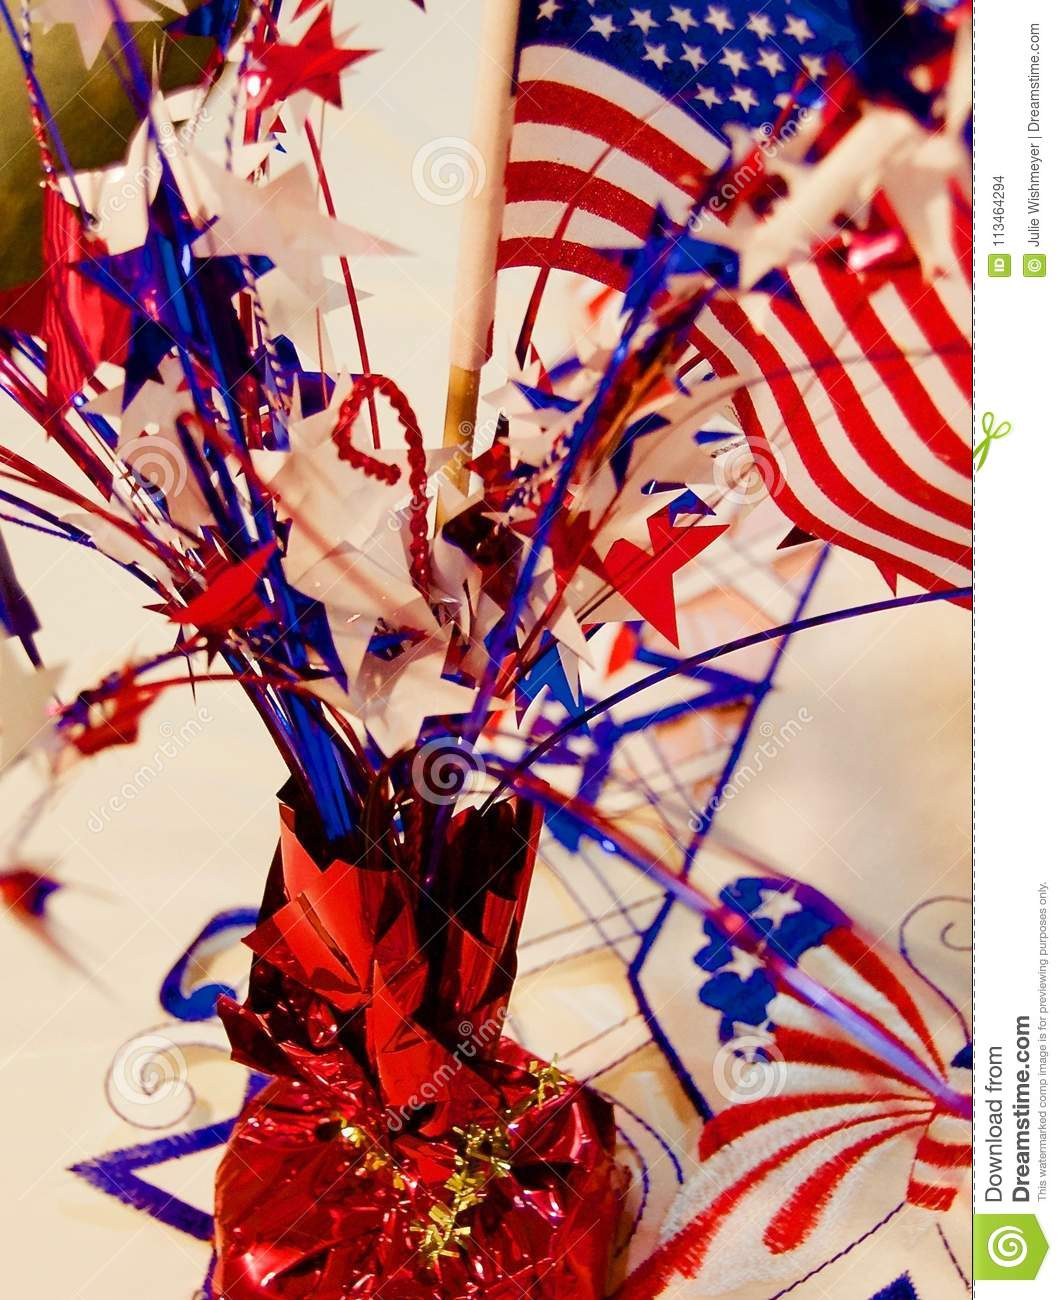 Red White And Blue Centerpiece On A Table Stock Photo Image Of